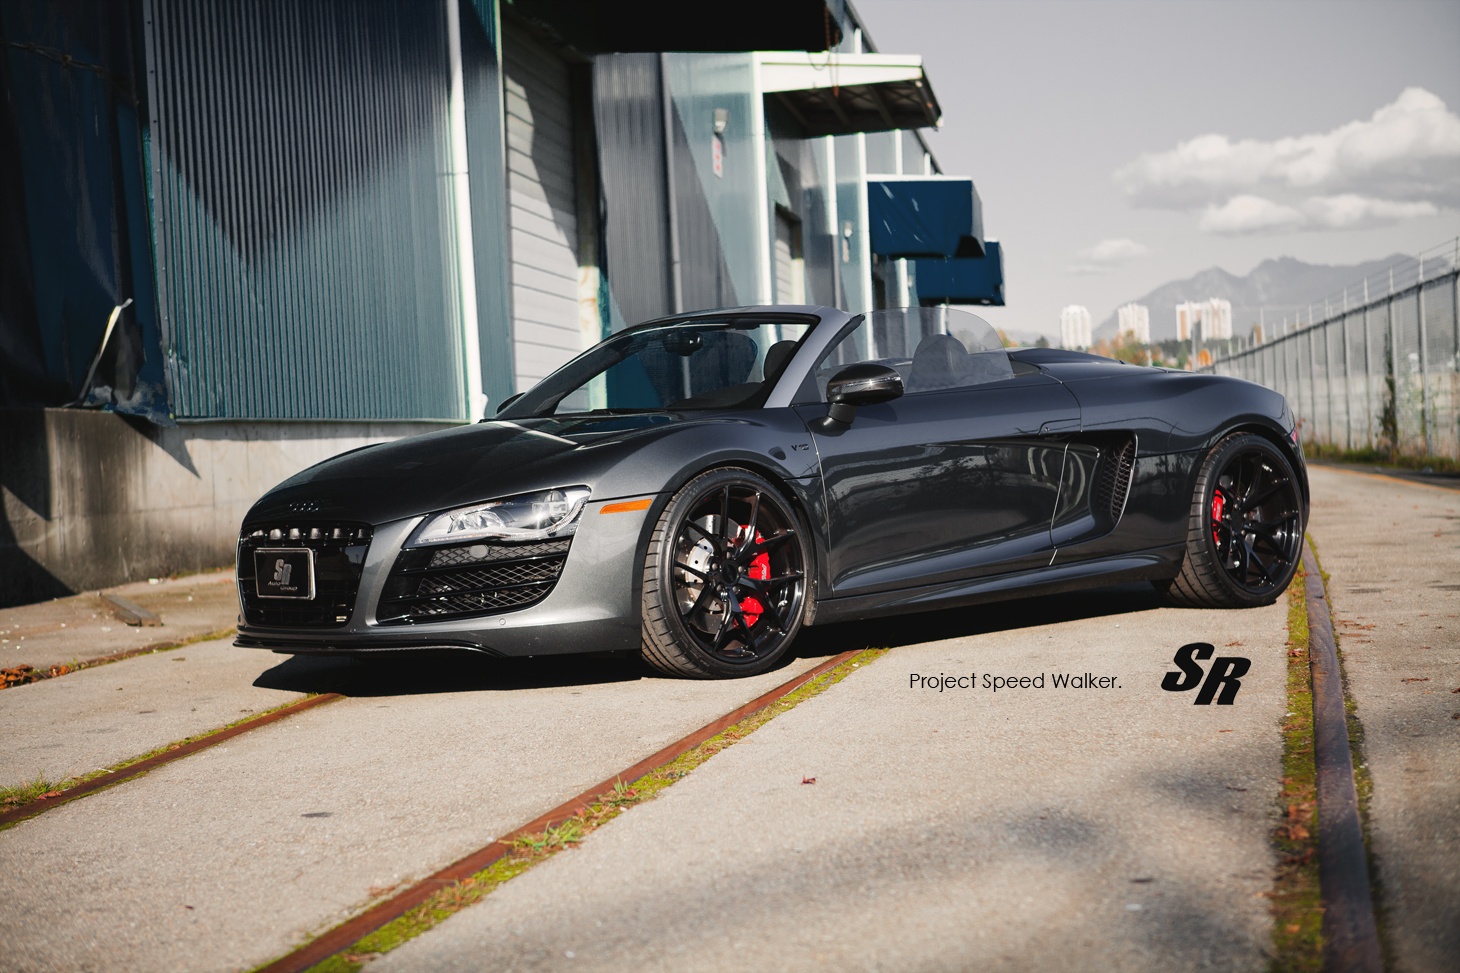 Audi Hd Wallpapers For Mobile Project Speed Walker Sr Auto Audi R8 Spyder